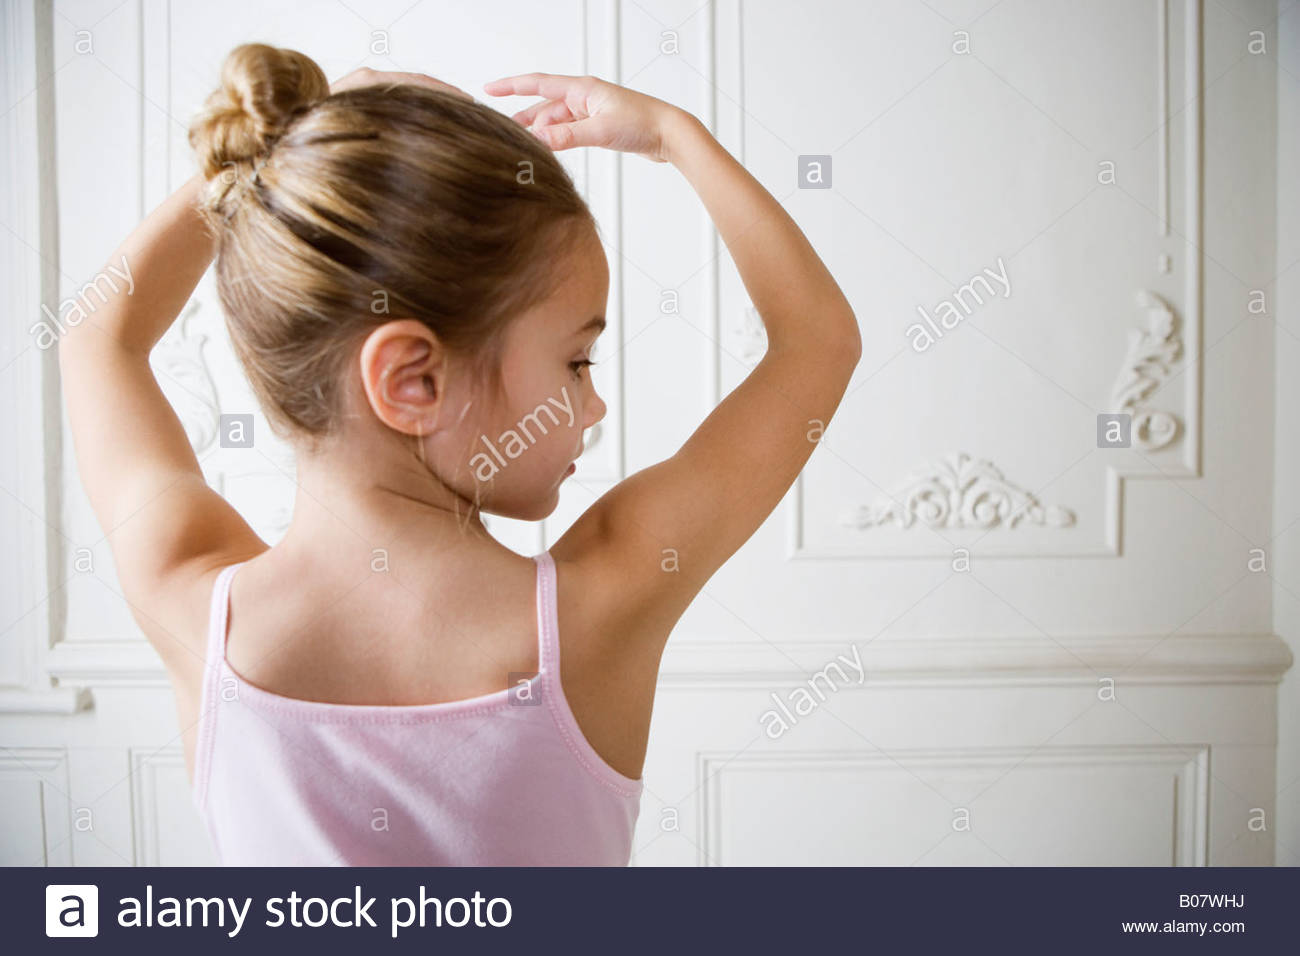 Young girl performing a ballet move Stock Foto